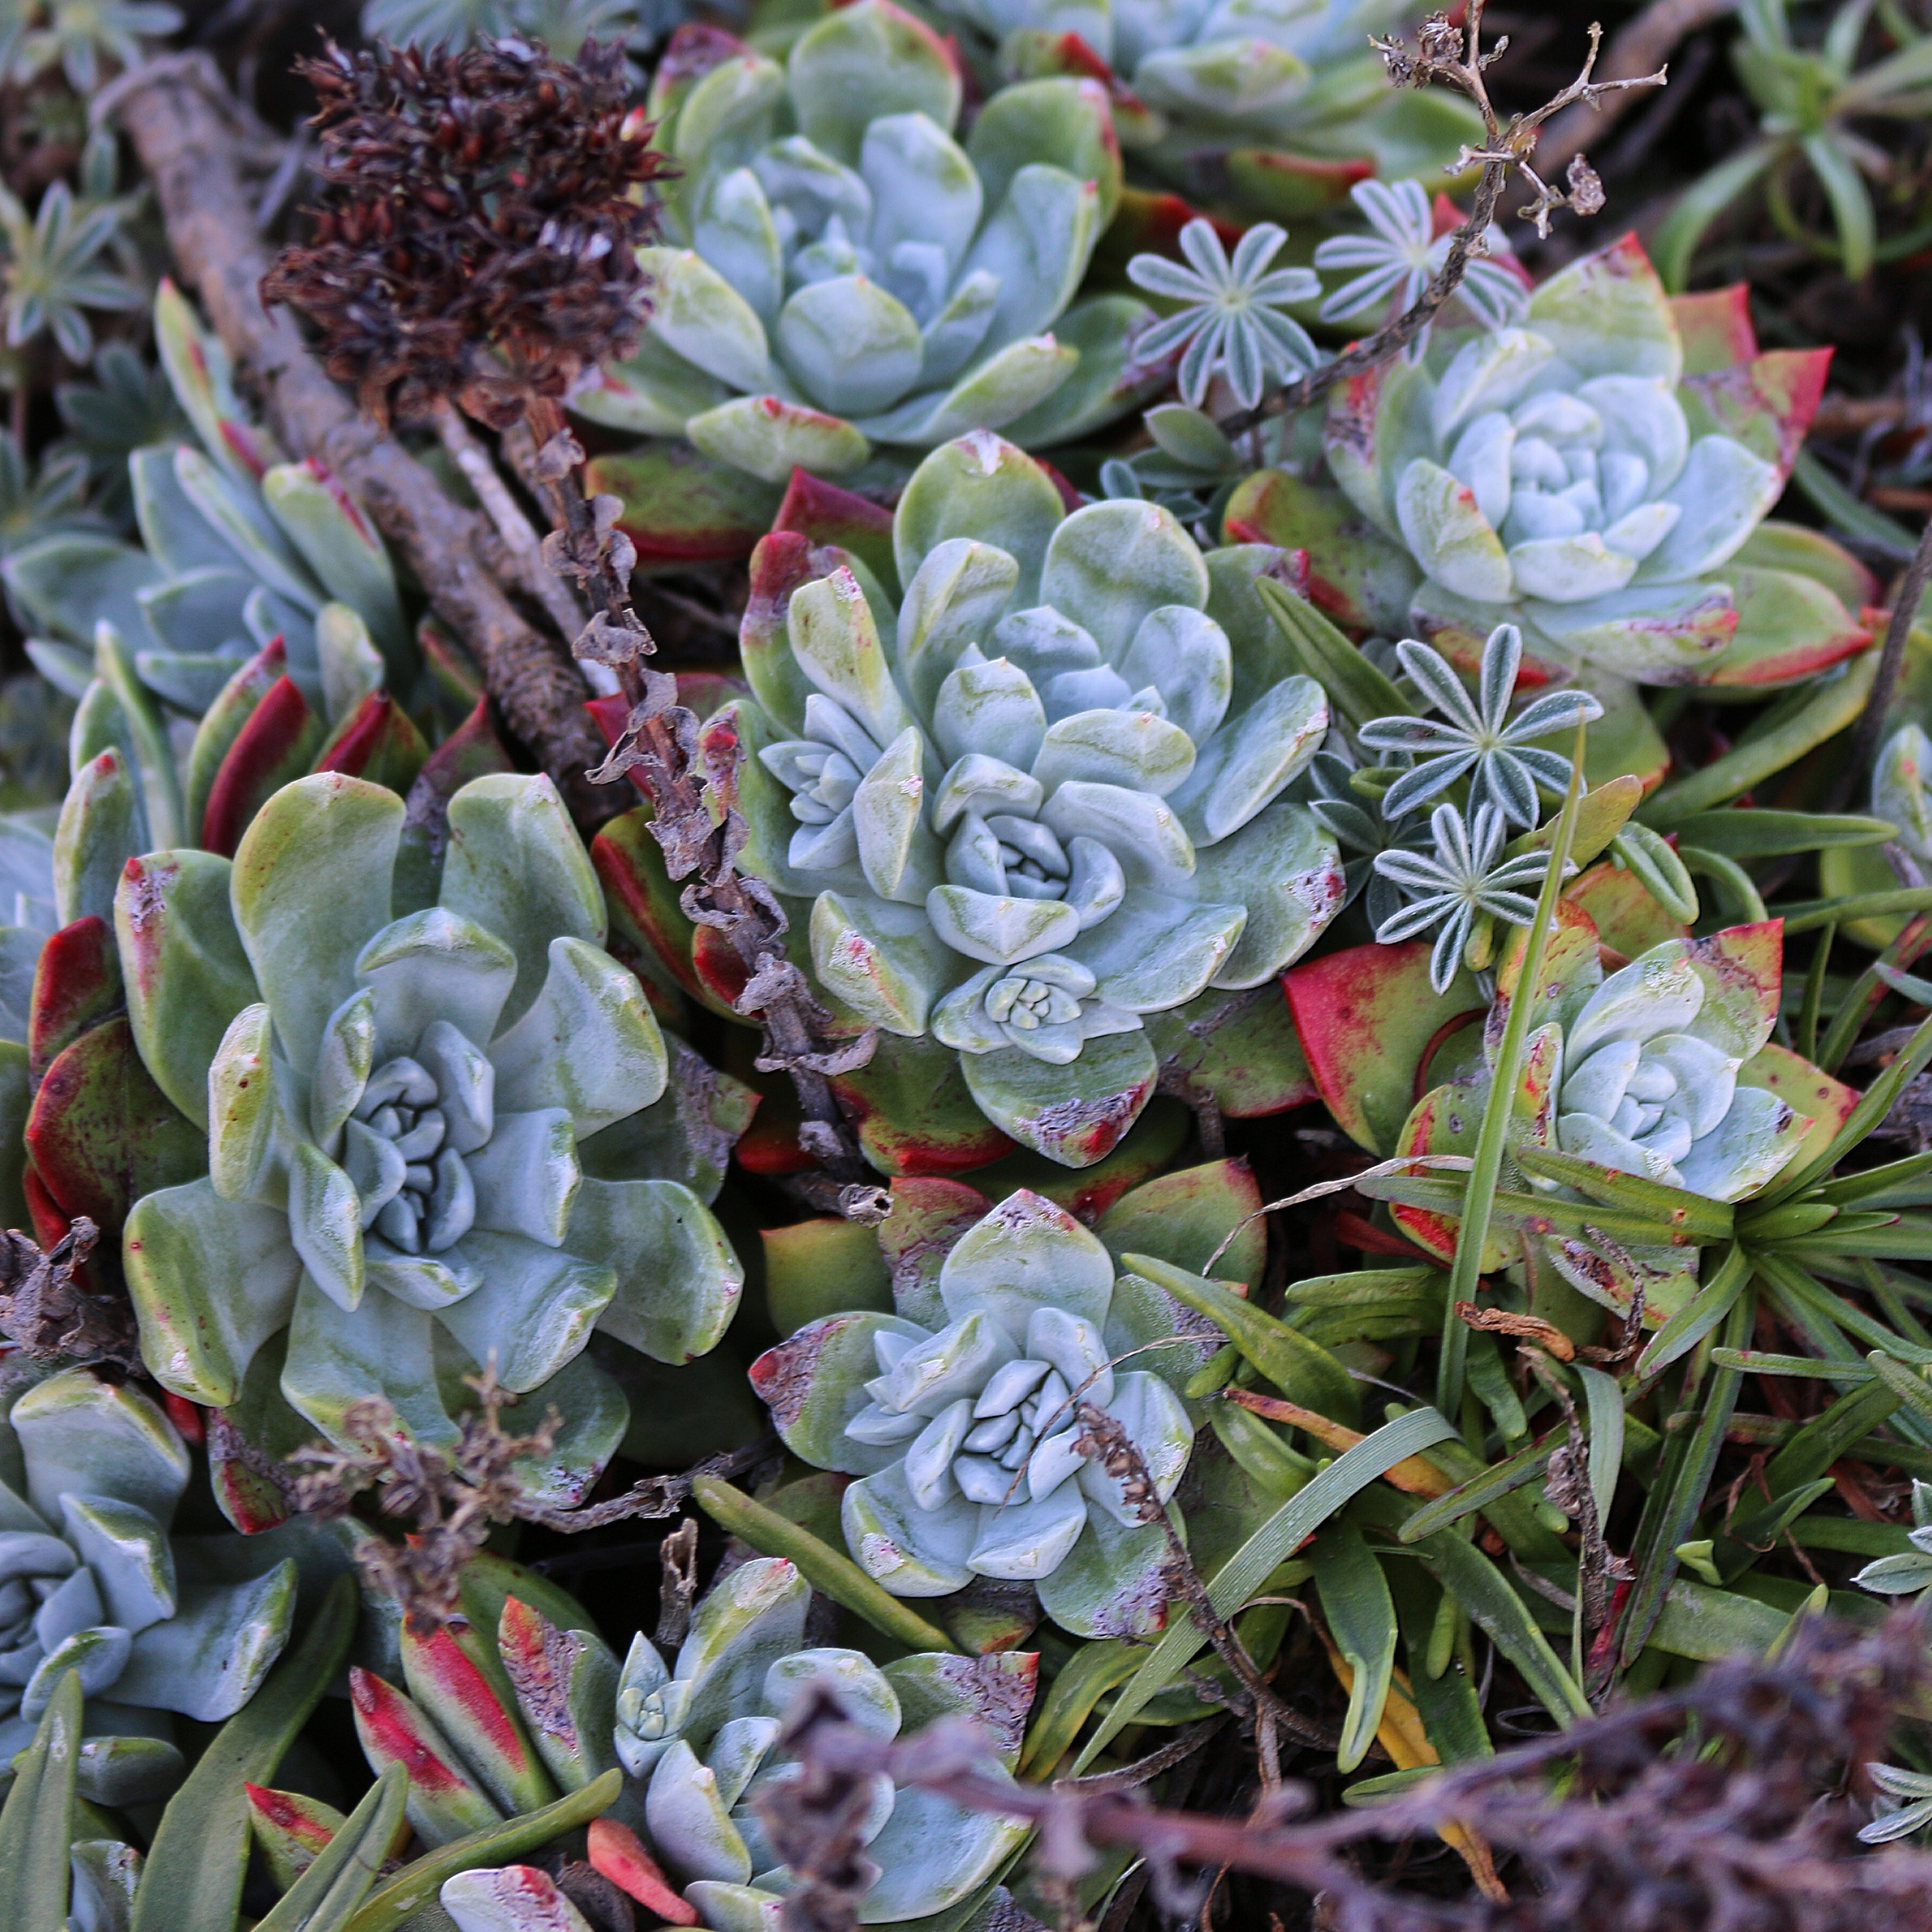 Dudleya farinosa, native to San Francisco coast